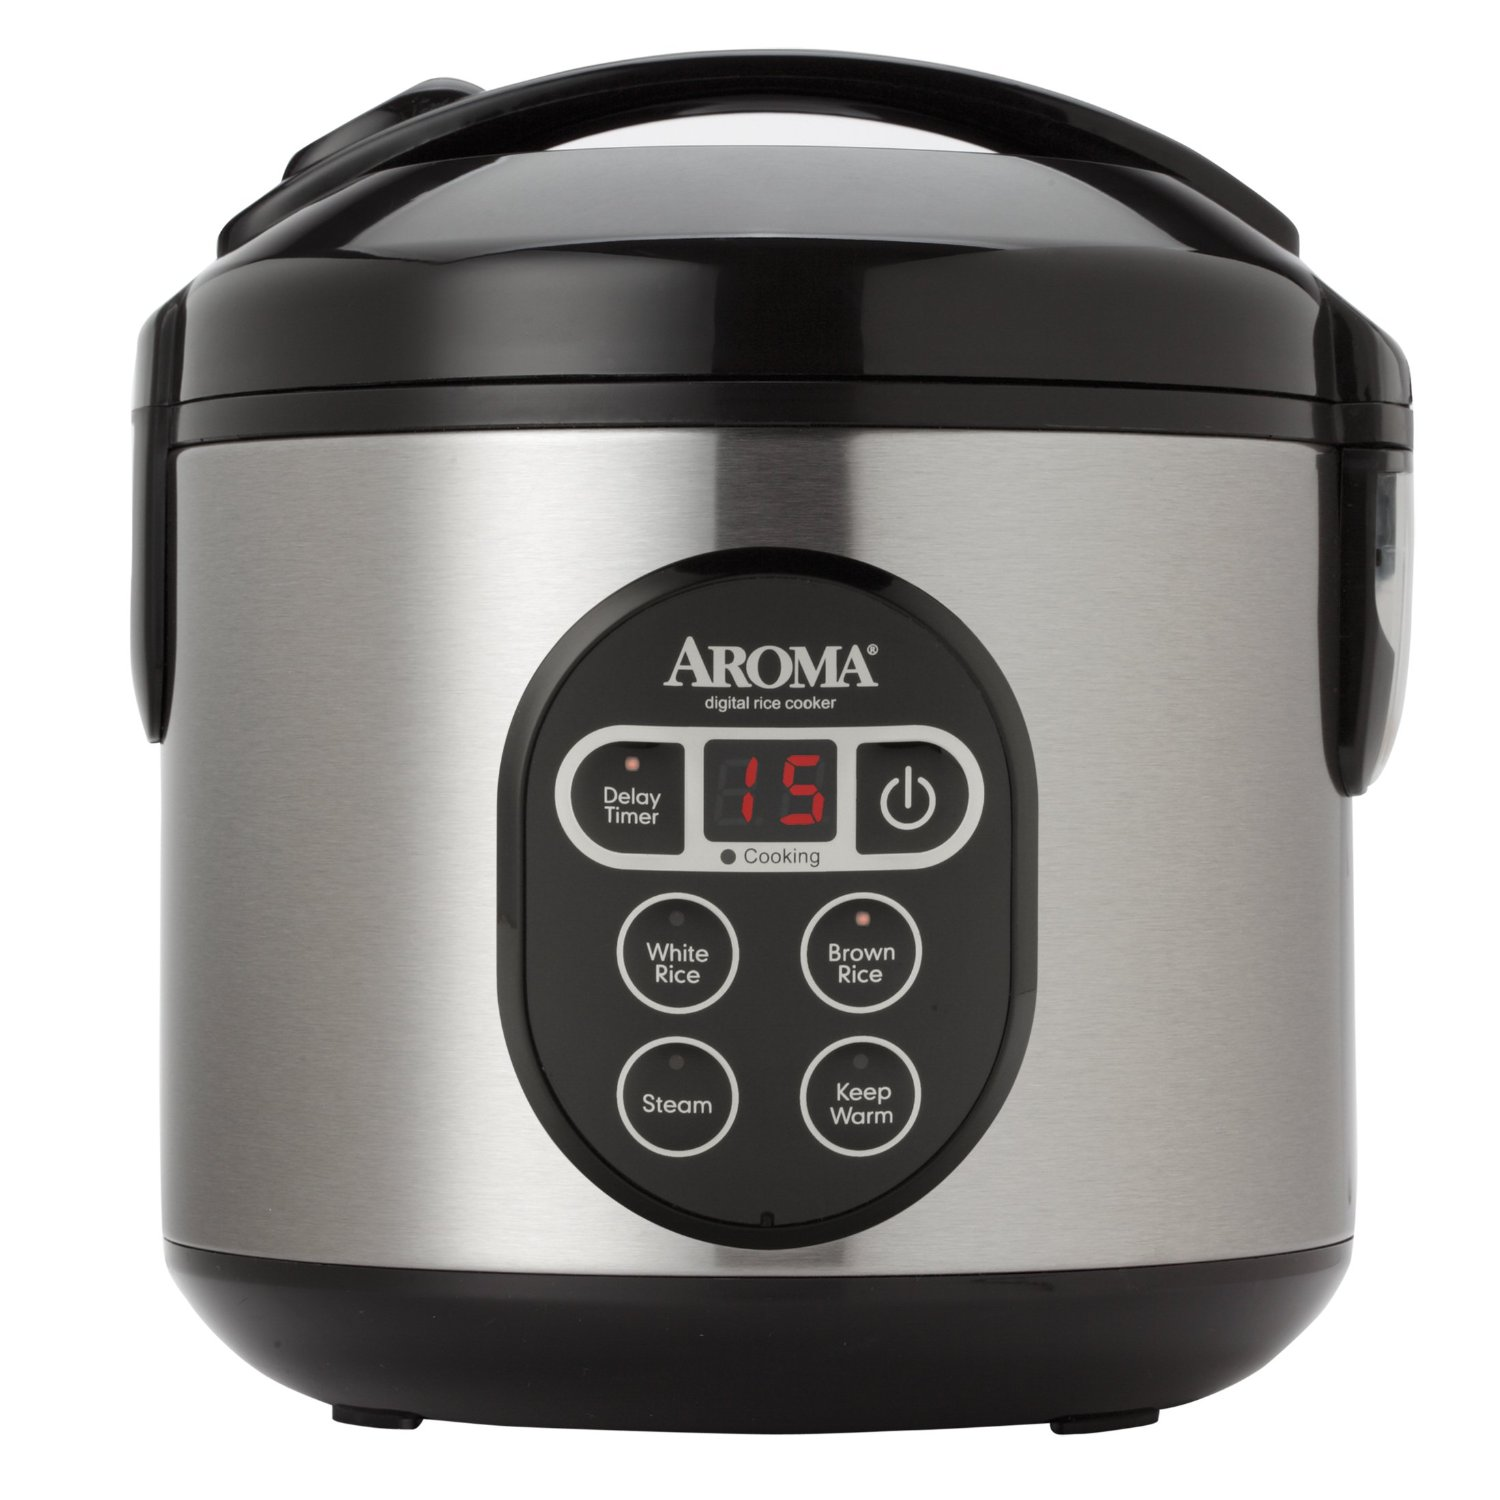 Best Aroma Rice Cooker (View 9 of 10)